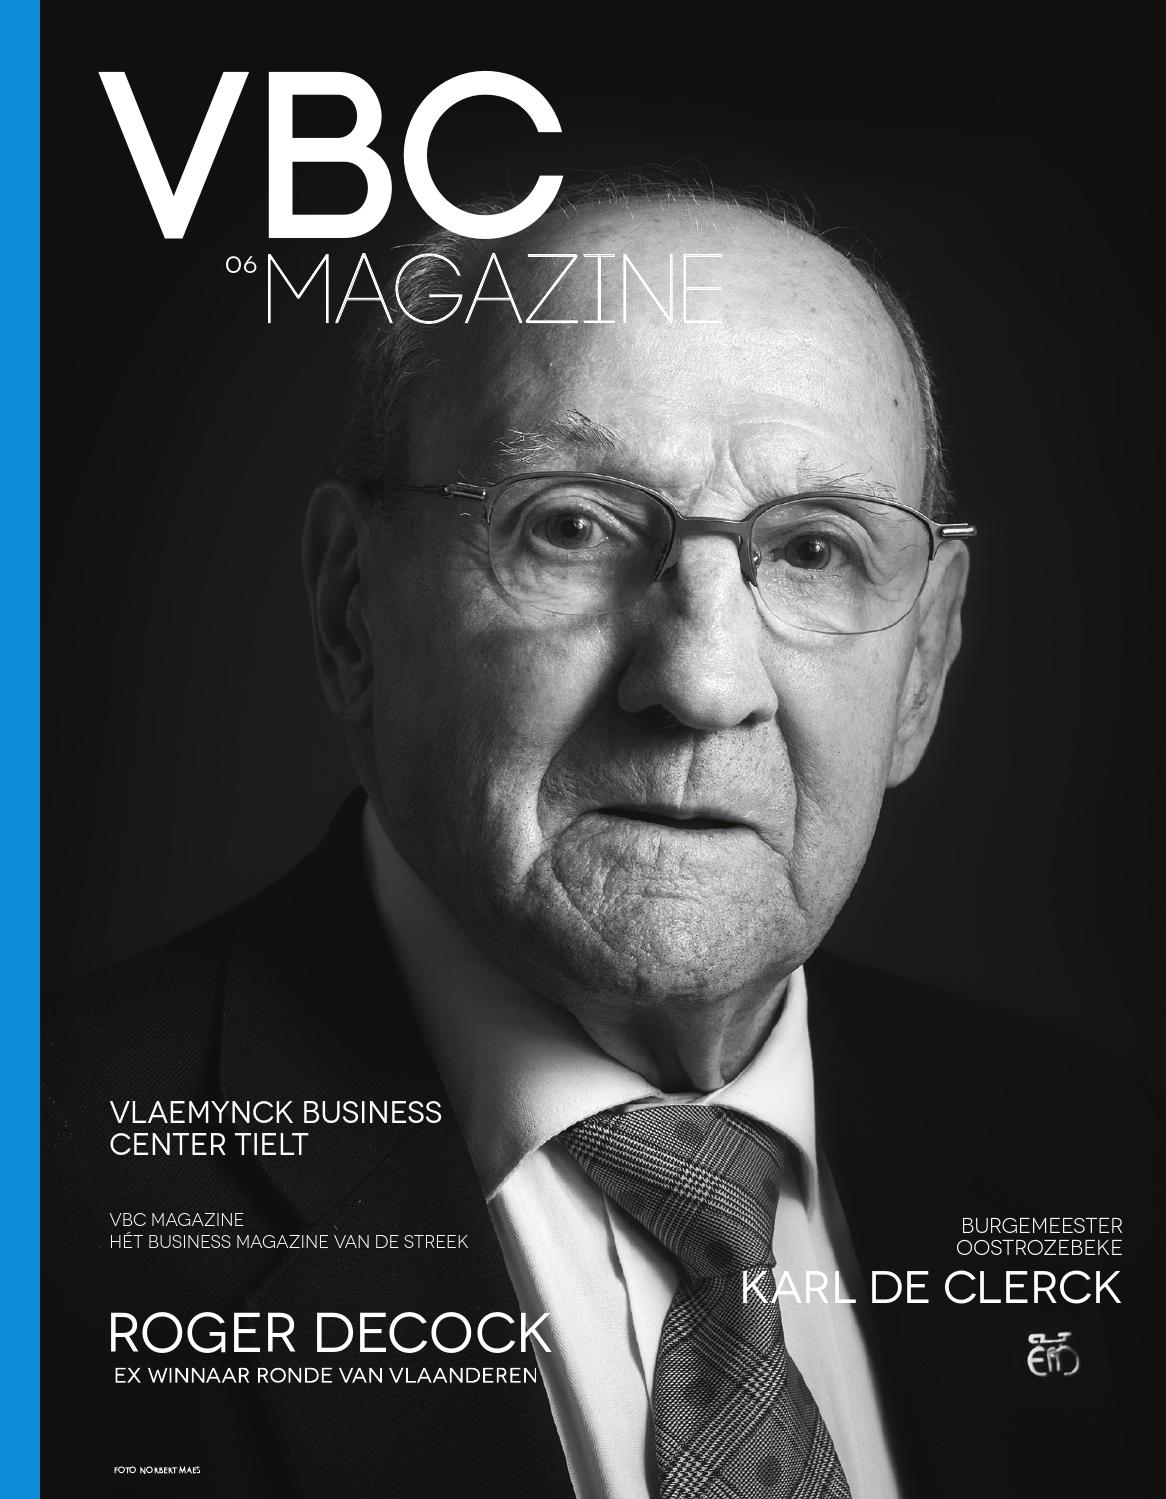 Vbc magazine 06   januari juni 2016 by vlaemynck busines center ...